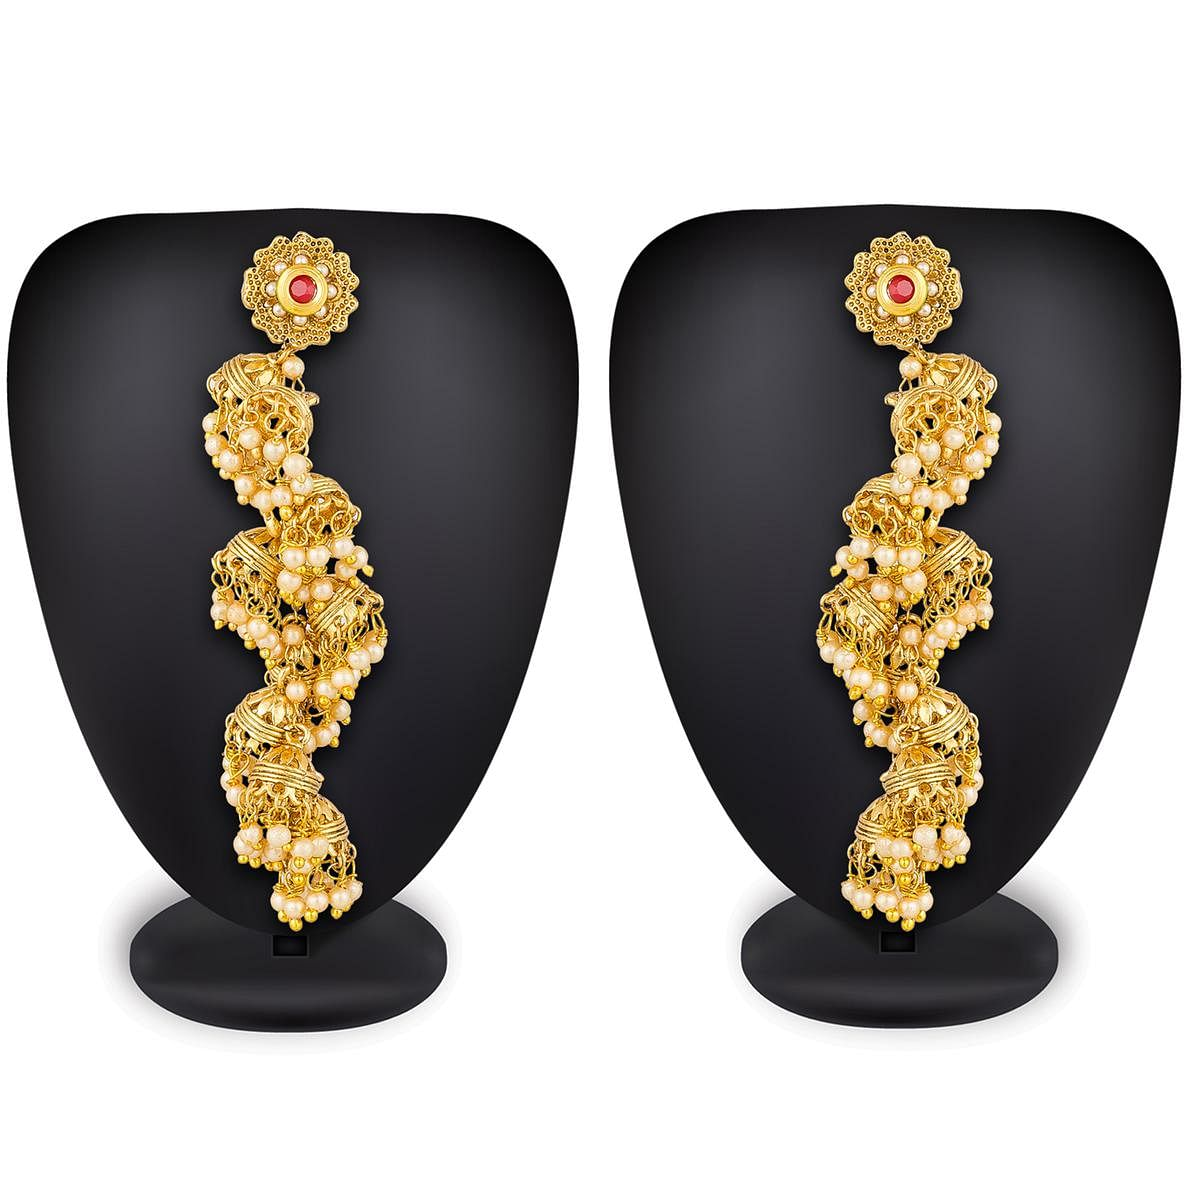 Refreshing Golden Colored Mix Metal & Stone Work Earrings Set